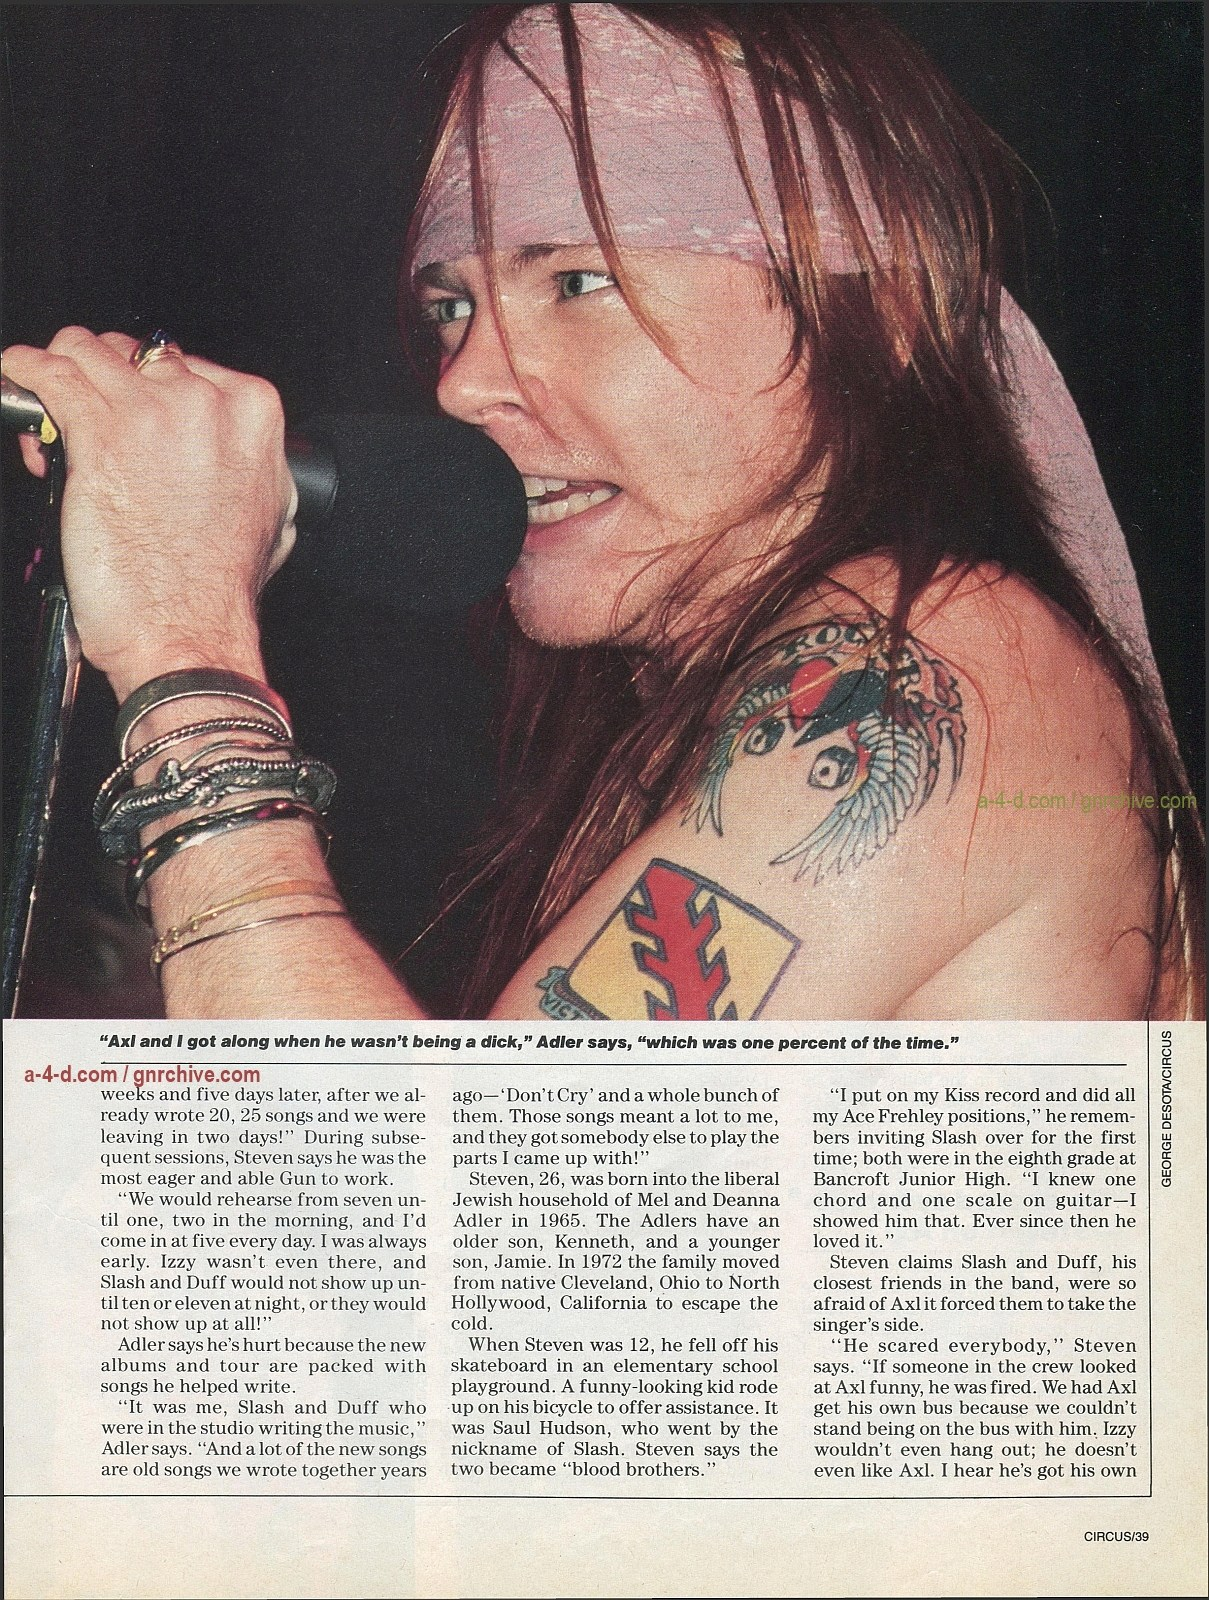 1991.10.31 - Circus - Axl Rose mocked/Fightin' words from Vince Neil 1991-111